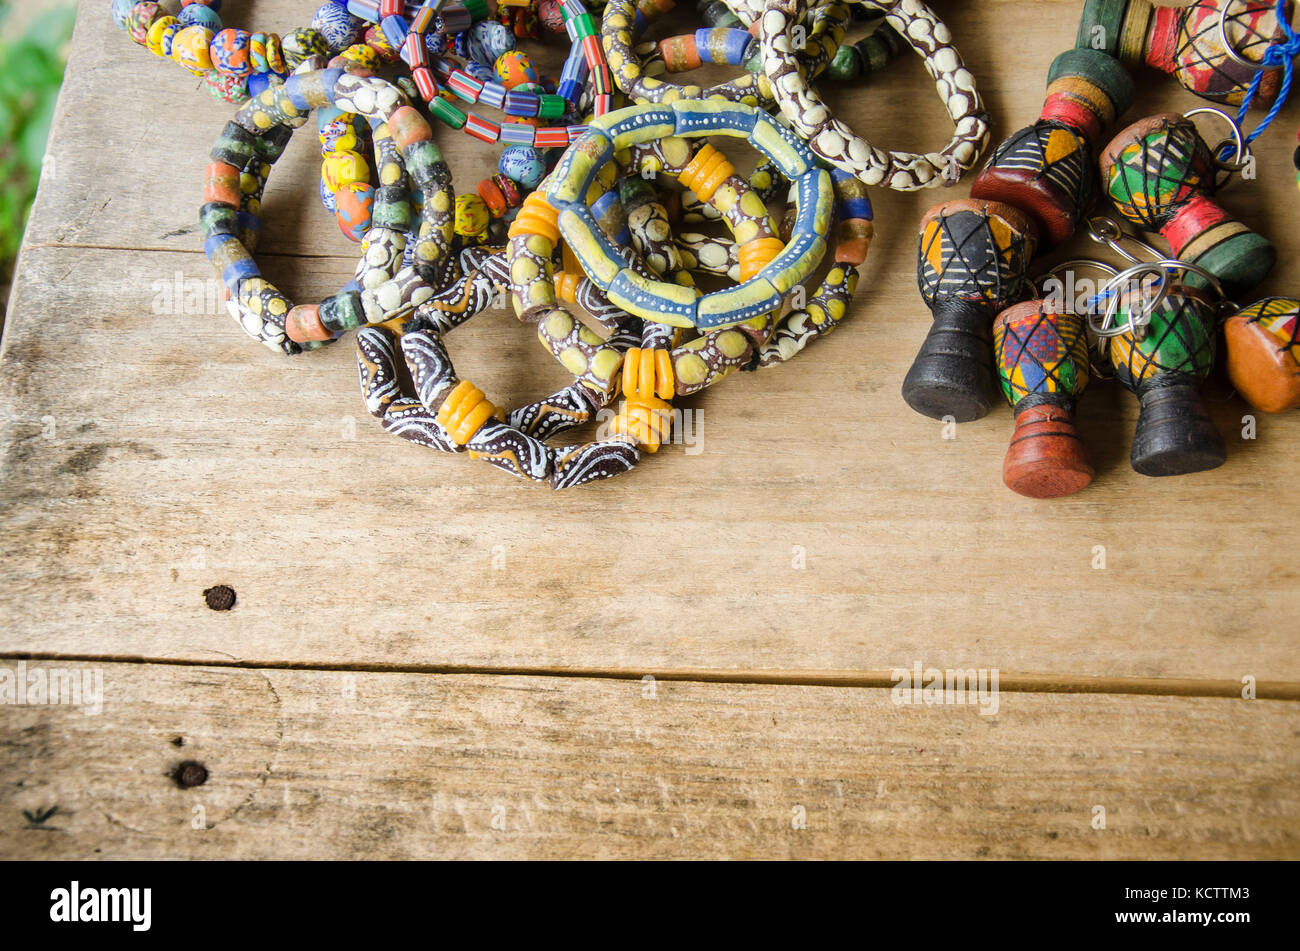 A WEST AFRICAN MOTHERLAND  JOURNEY IN PICTURES - Stock Image